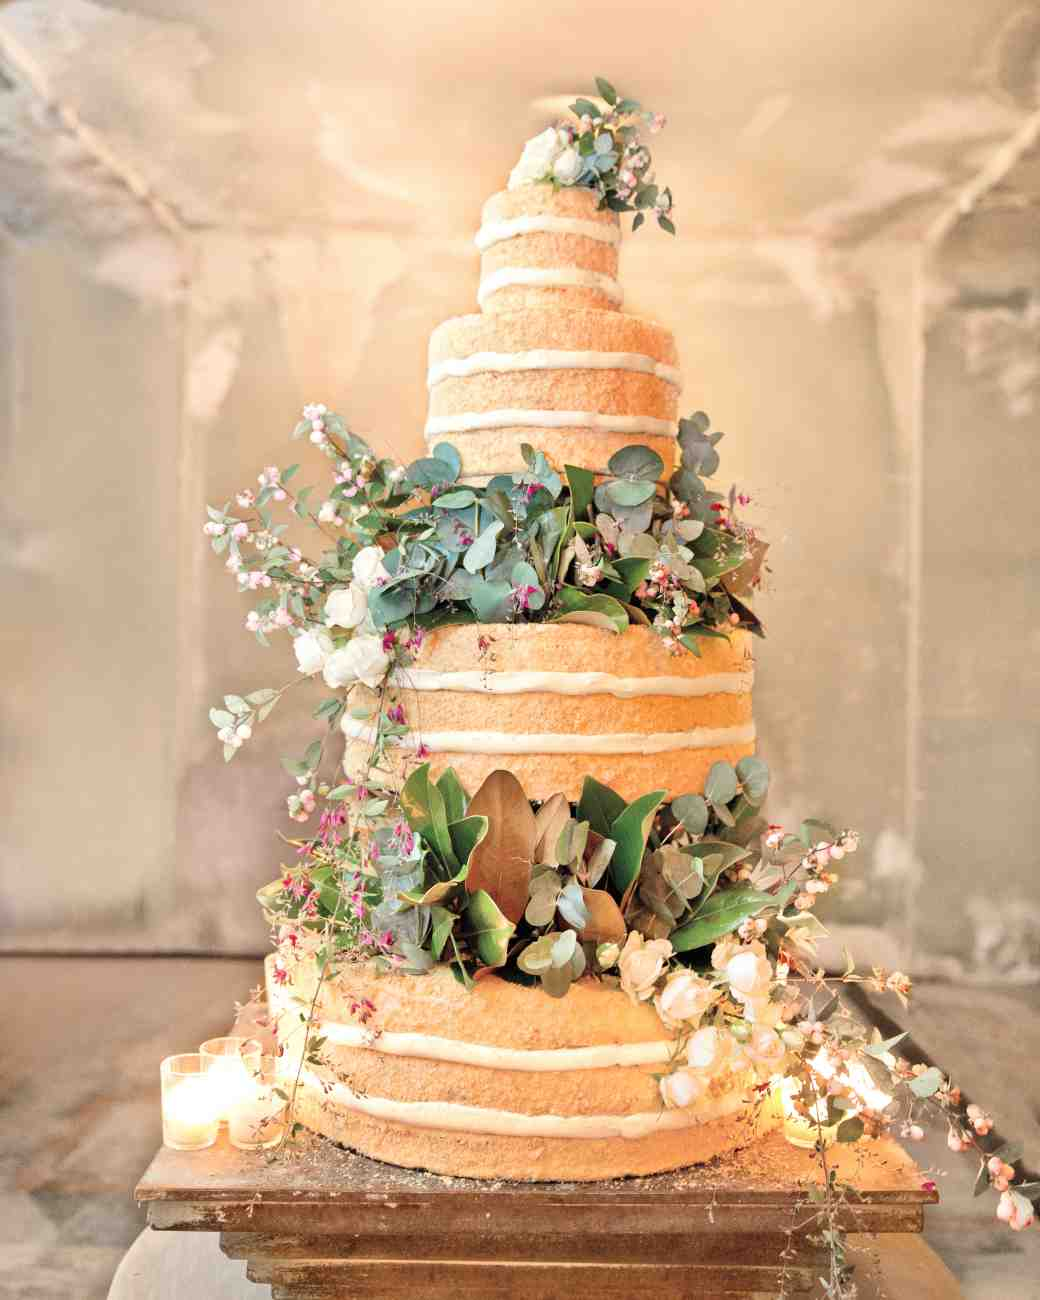 4 ways to save money on wedding cake cheap wedding cakes How to make a cheap wedding cake 02